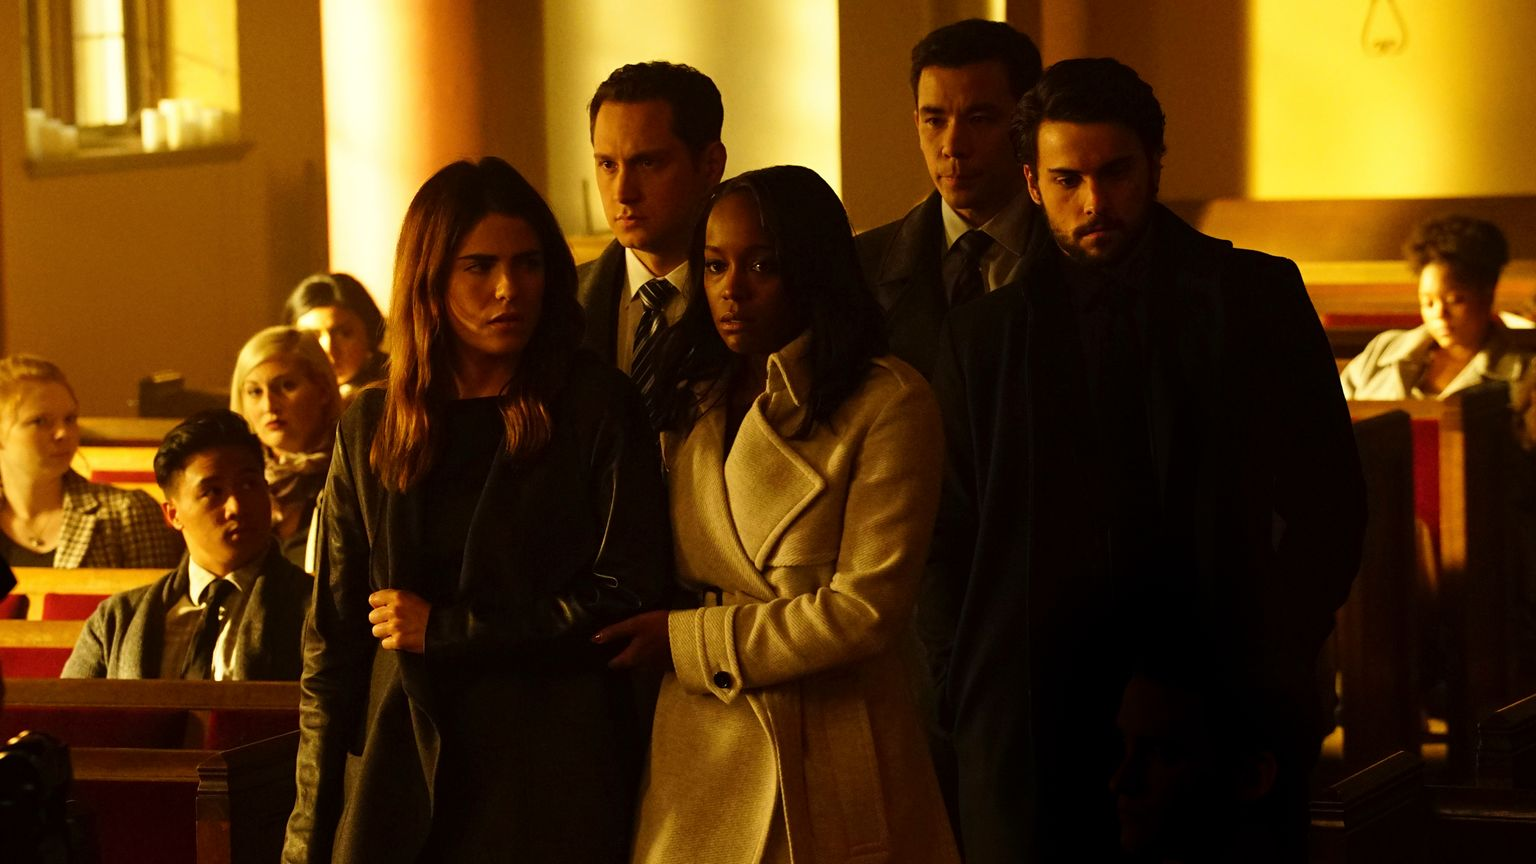 efterår, serieguide, serie tvserie, krimi, krimiserie, abc, how to get away with murder, streaming, streaming guide